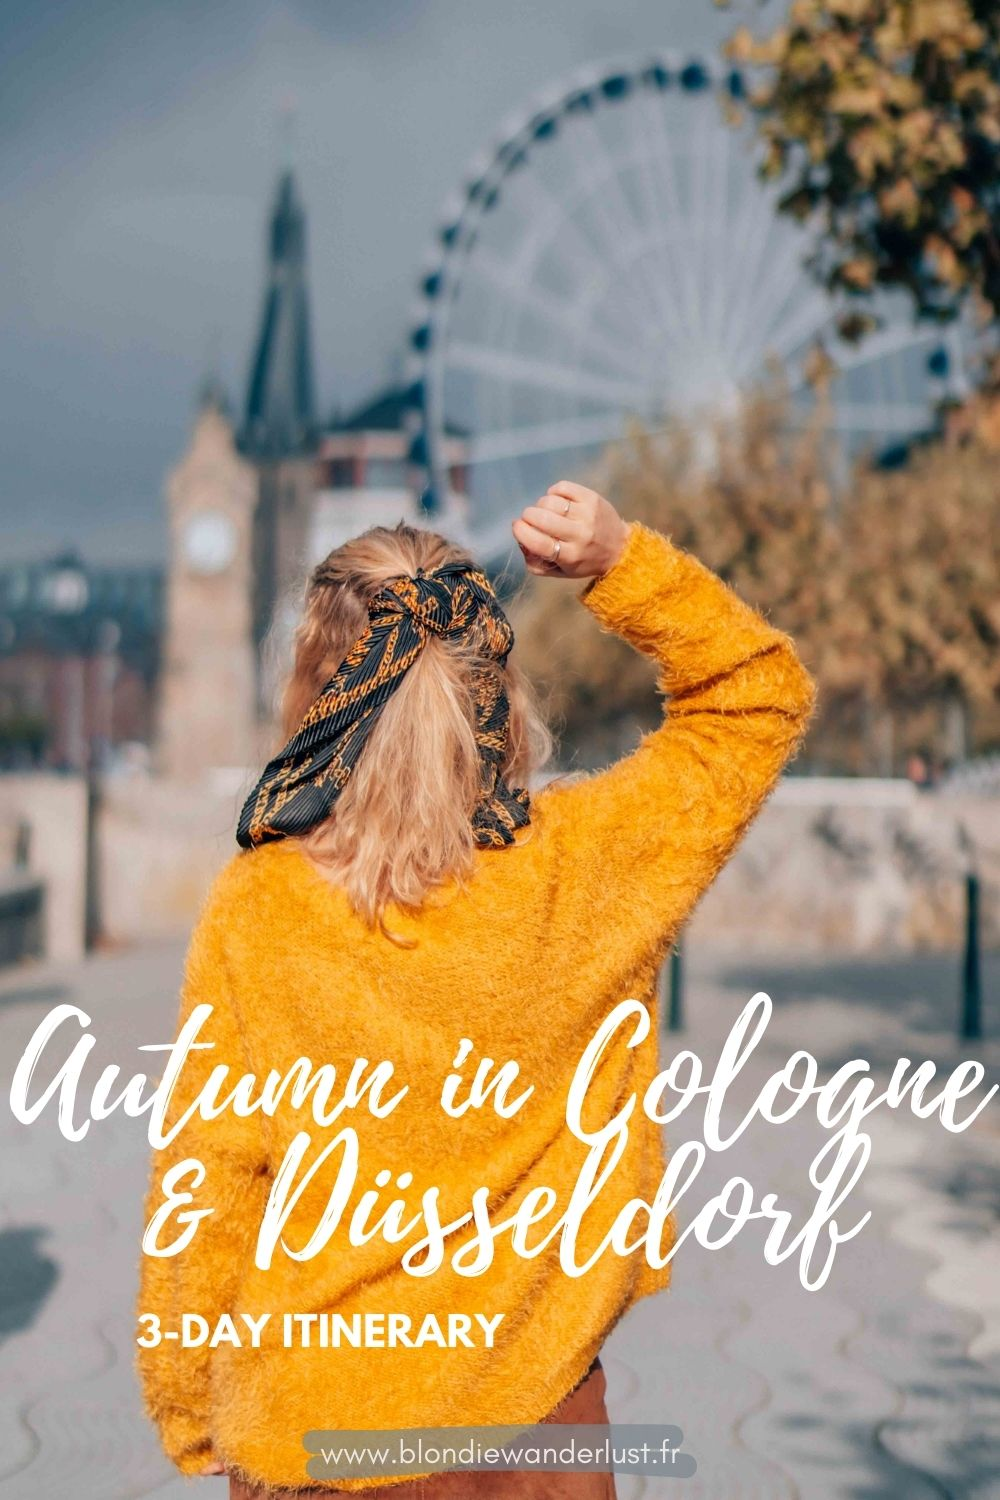 A 3-day itinerary to enjoy Autumn in Cologne & Düsseldorf